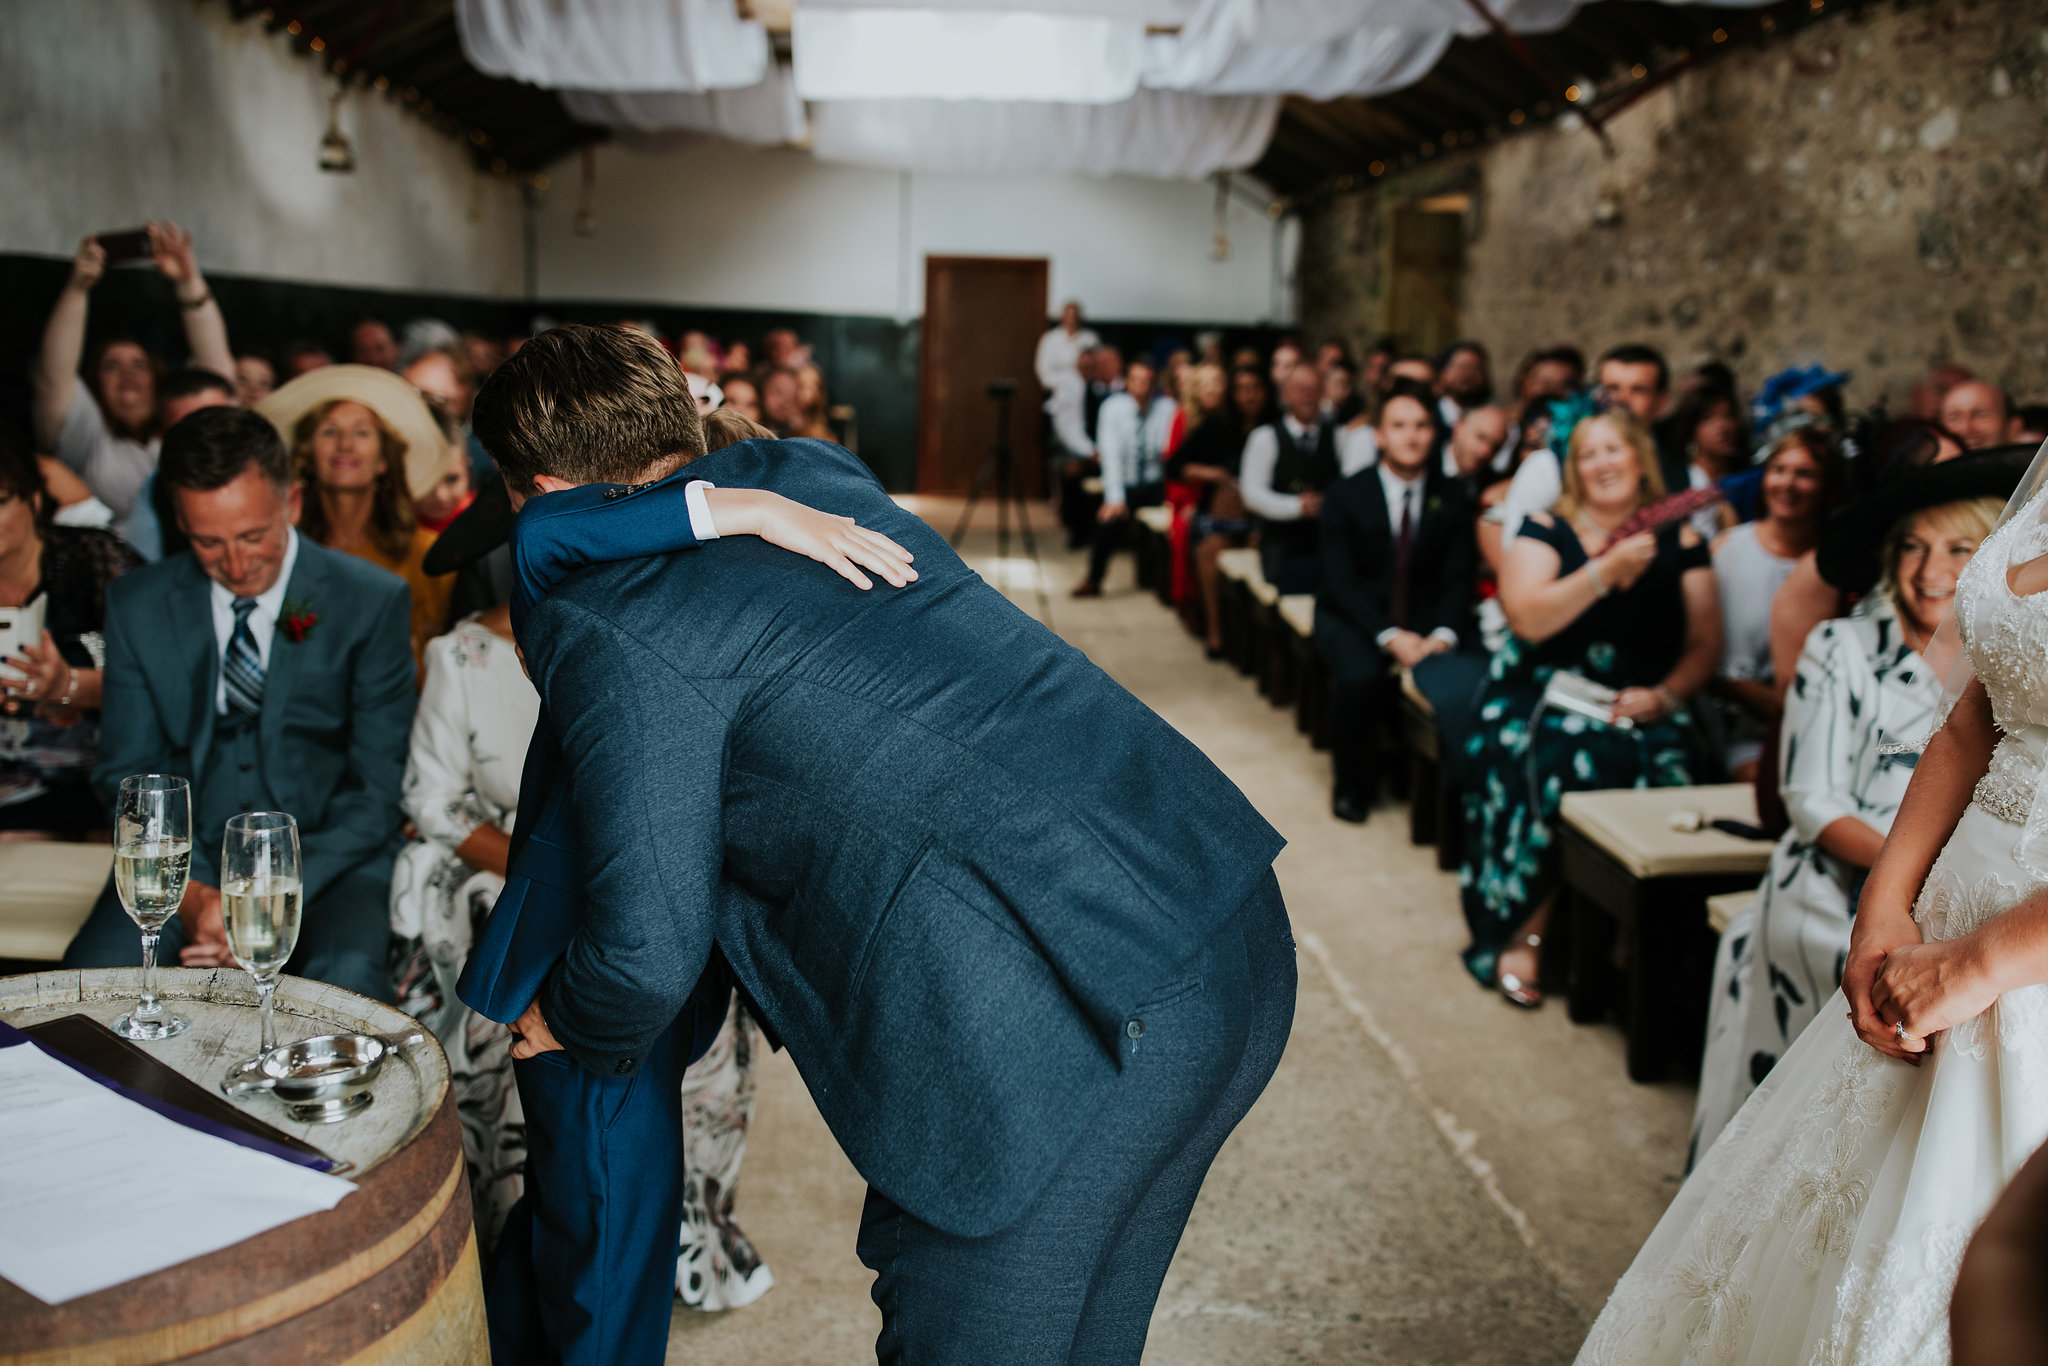 harelaw farm wedding photographs (40).jpg